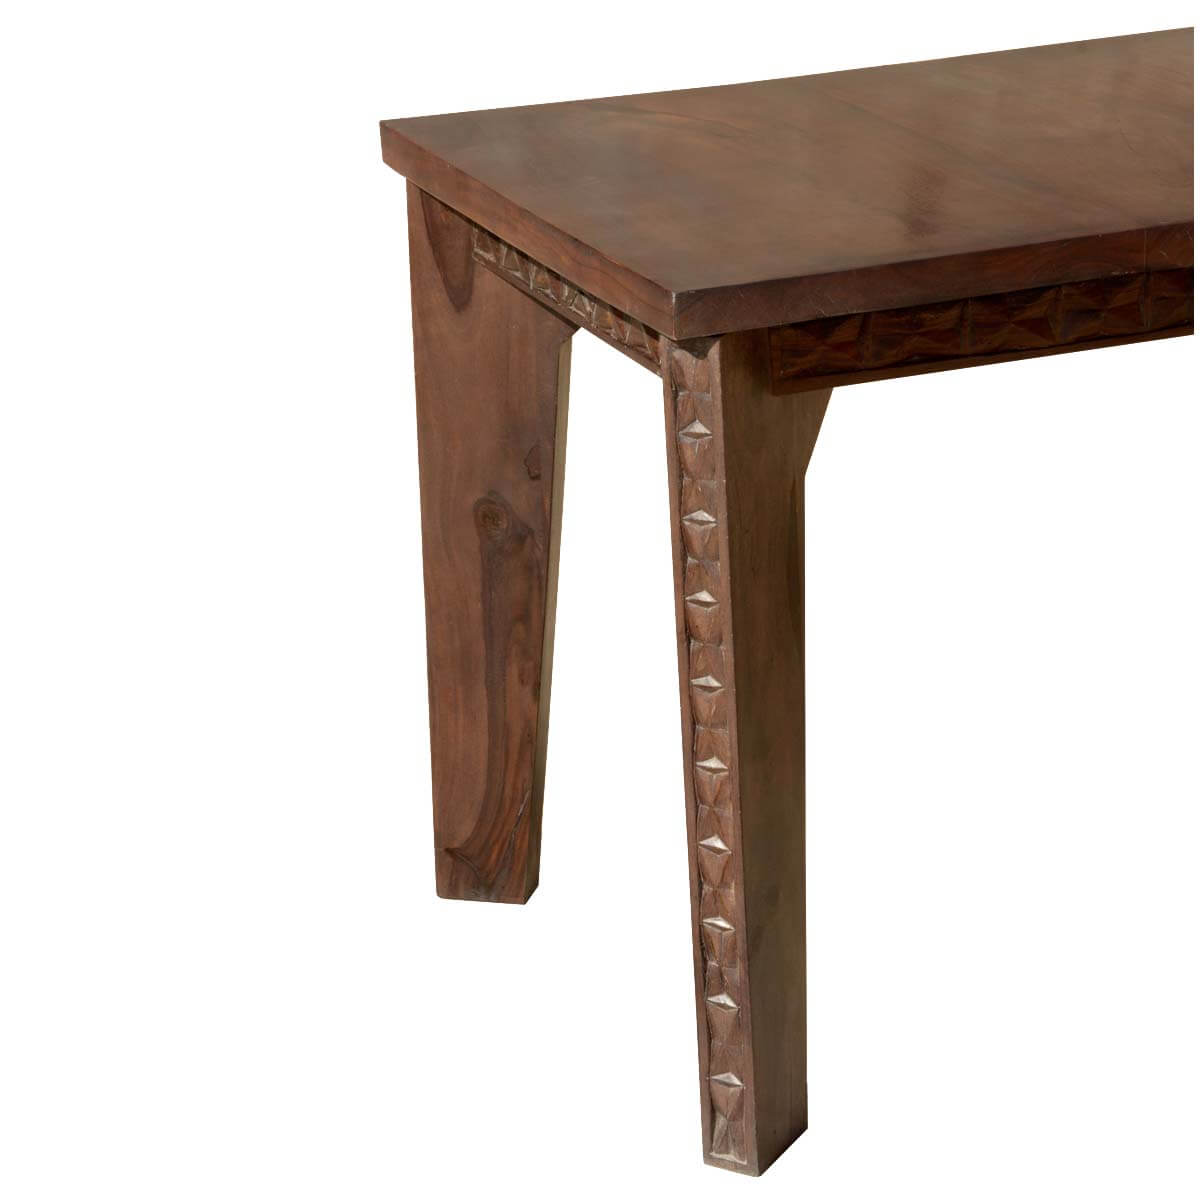 Photo Arhaus Coffee Tables Images Industrial Farmhouse